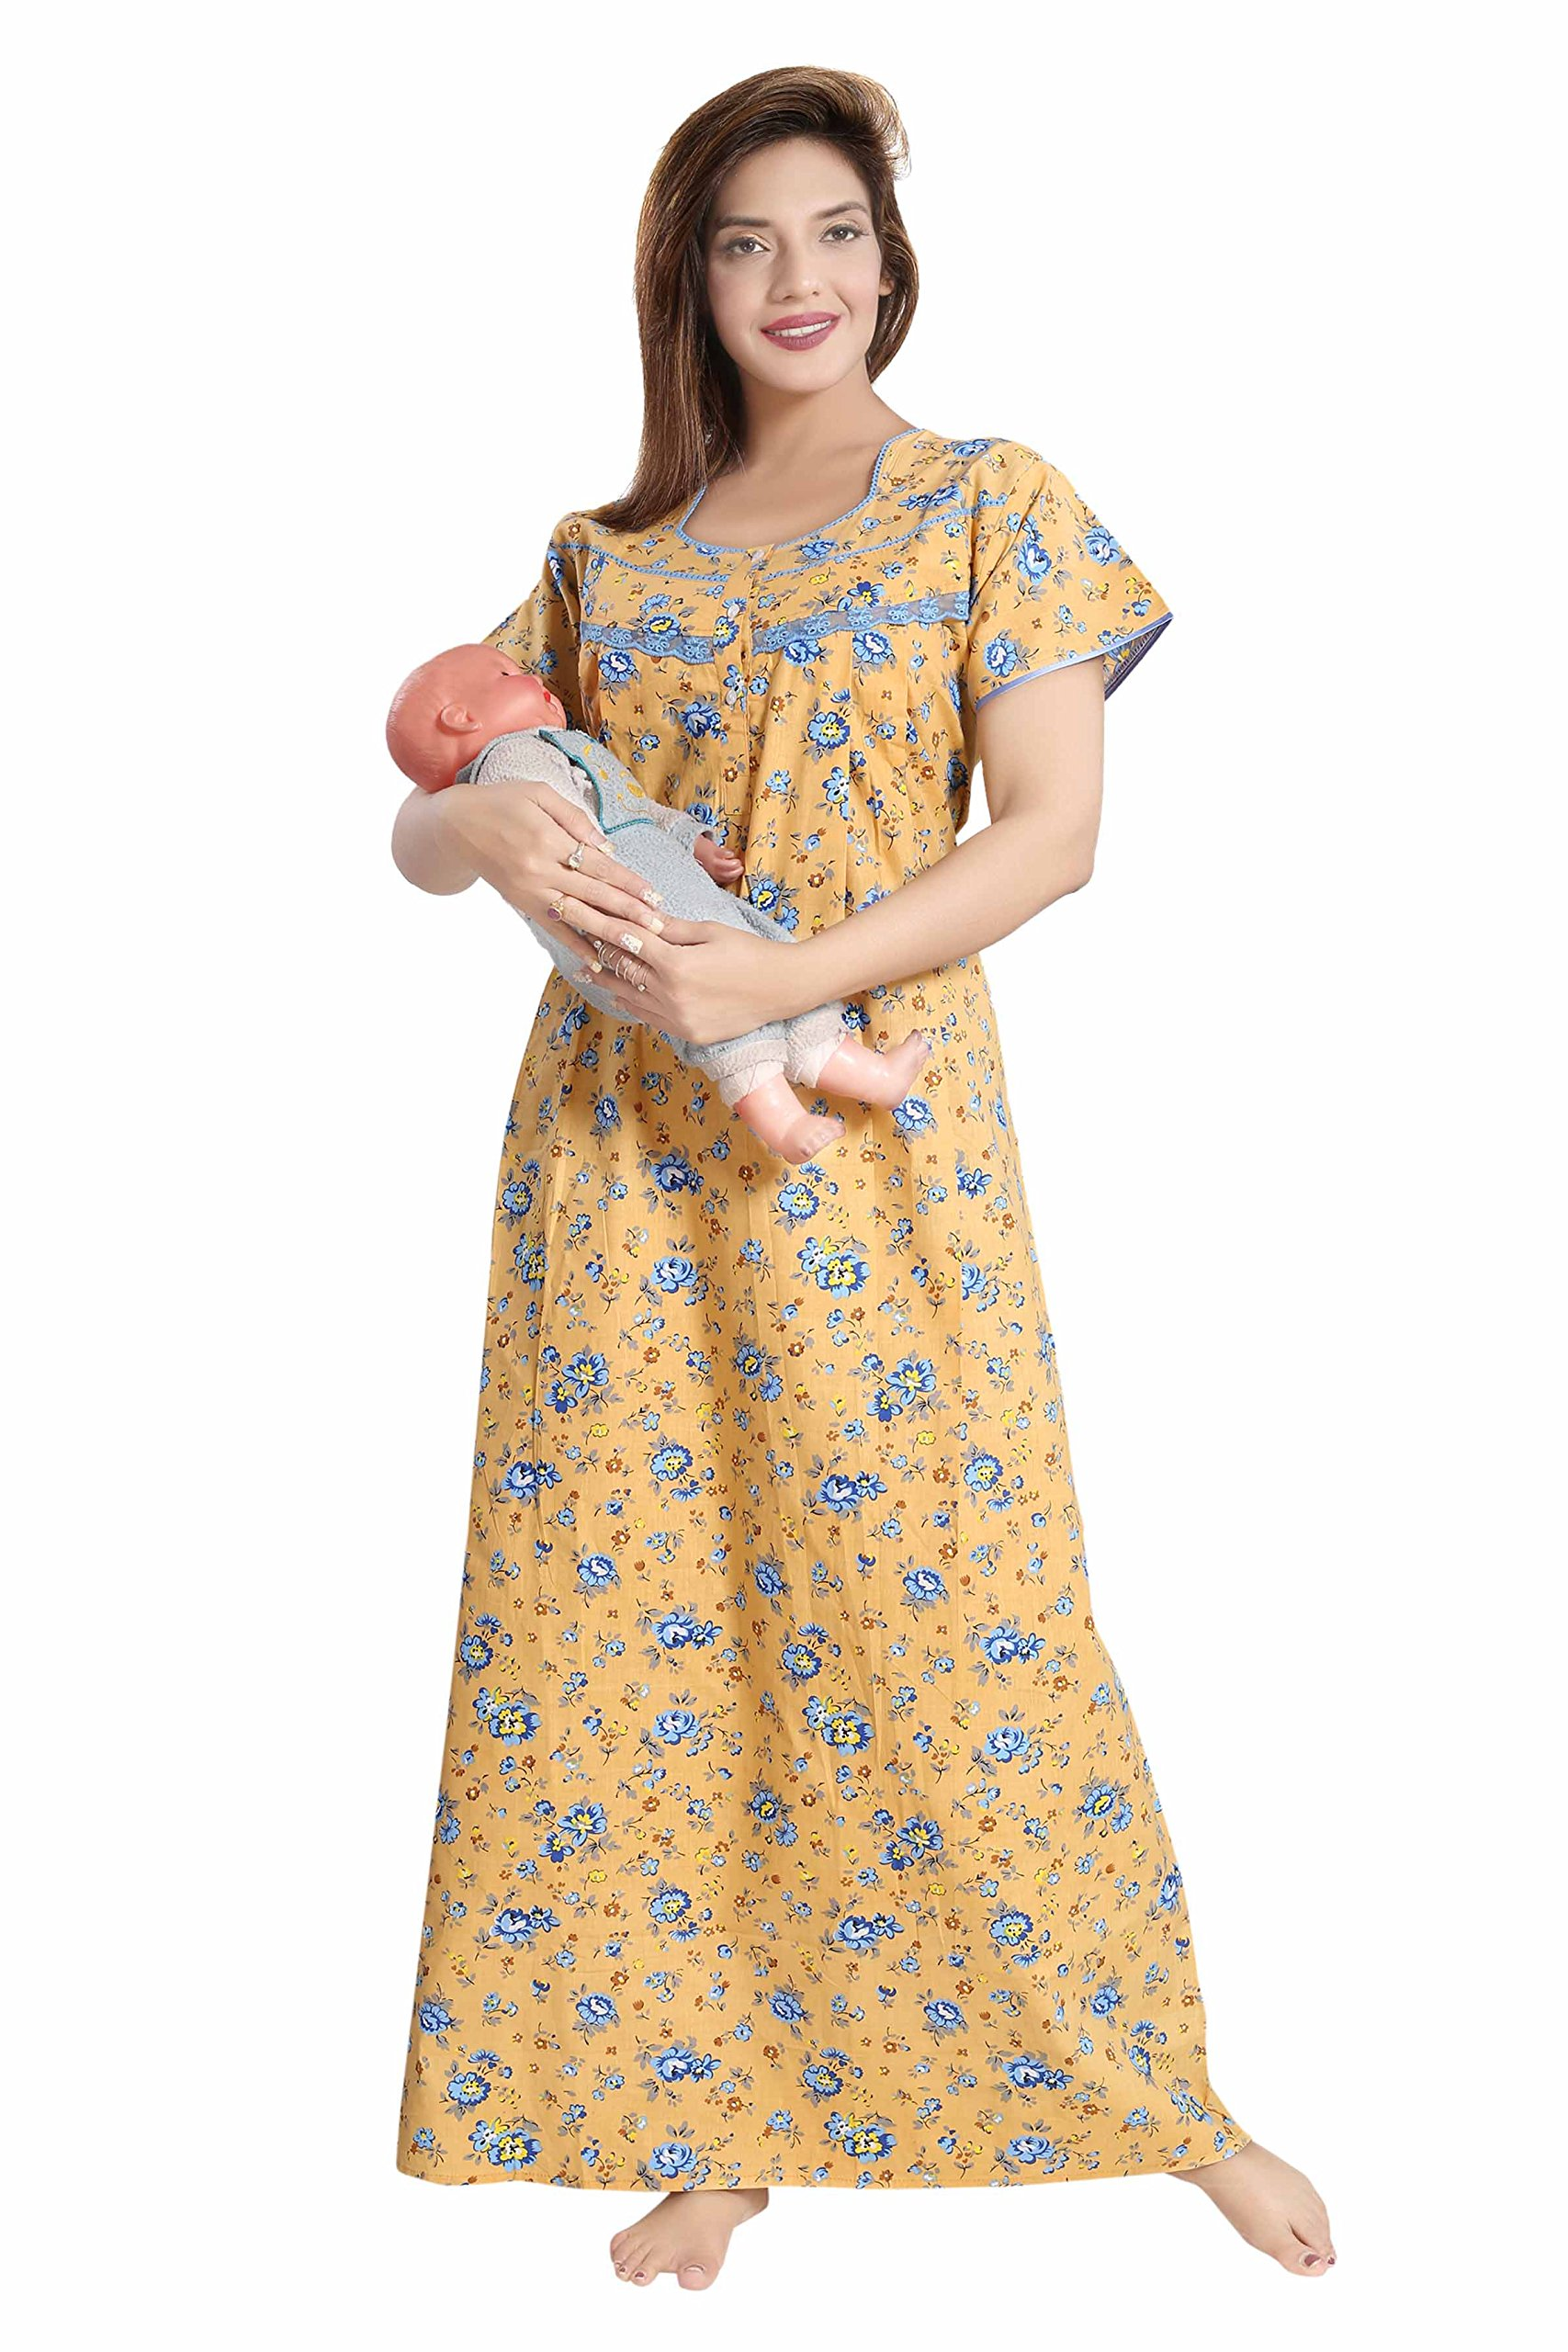 Soulemo Women's Pure Cotton Feeding Nighty/Maternity Dress for Post & Pre Pregnancy Wear. 399 product image